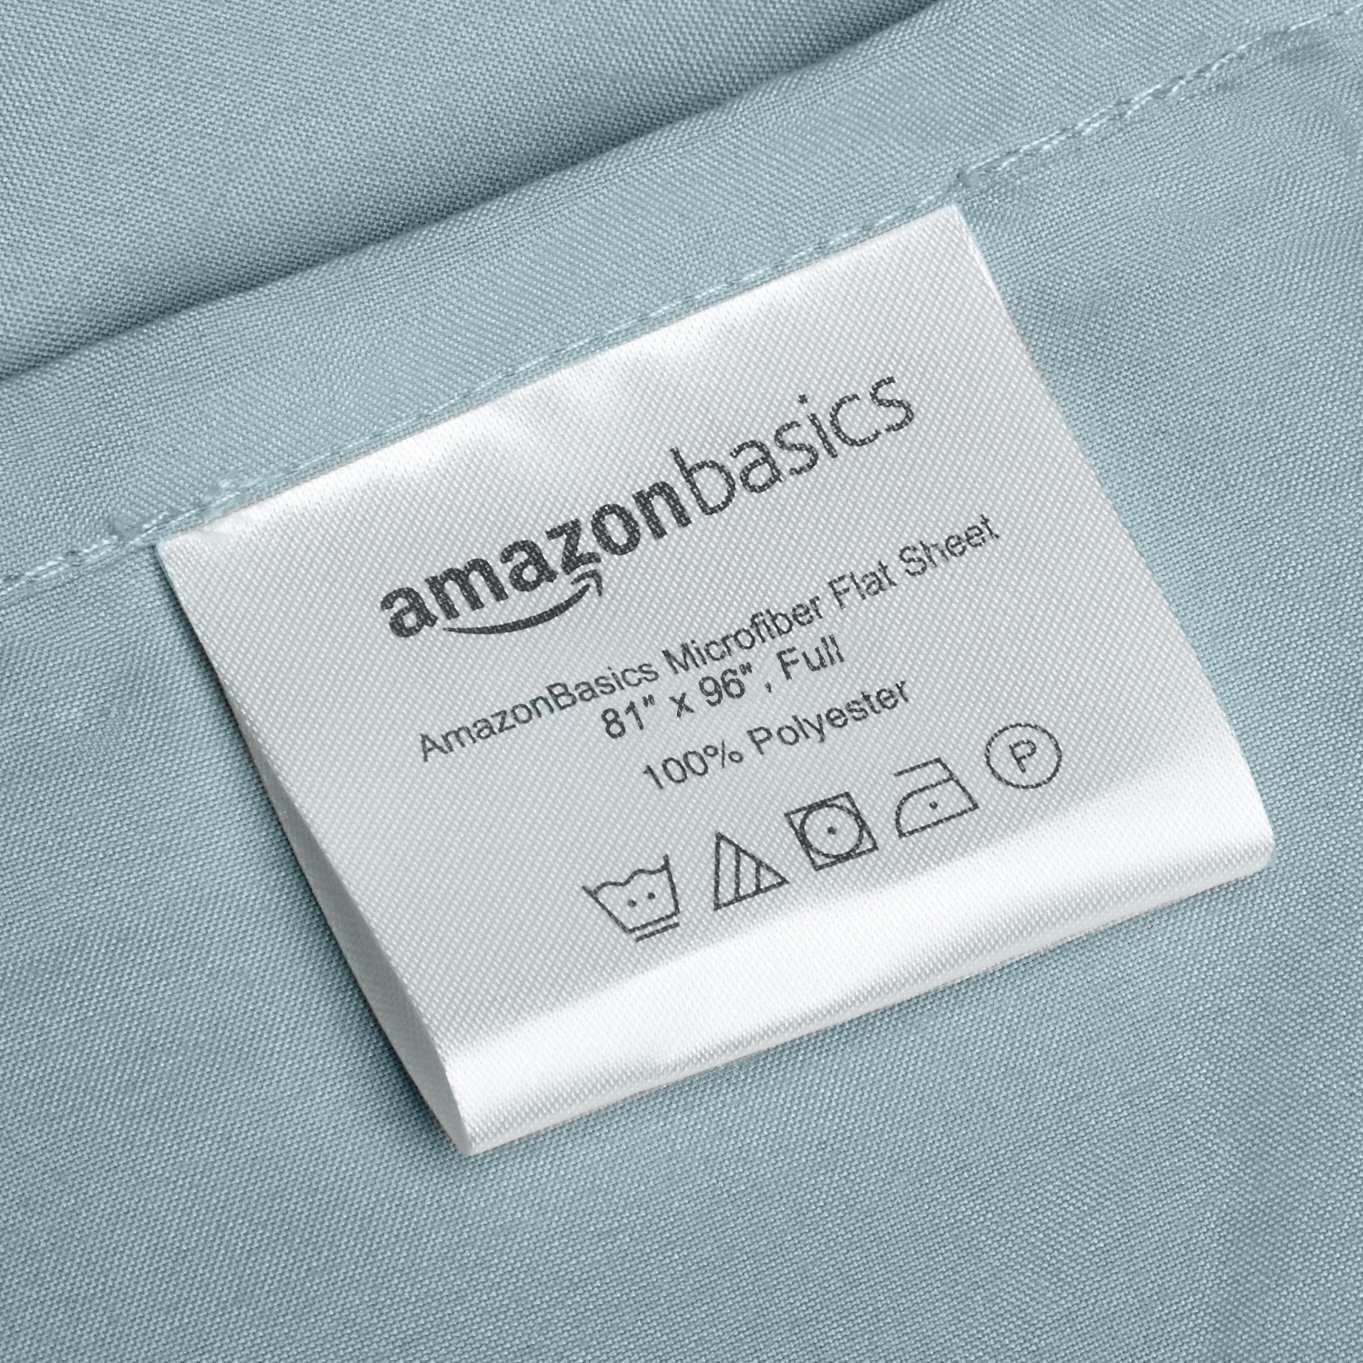 AmazonBasics Microfiber Sheet Set - Full, Spa Blue by AmazonBasics (Image #4)